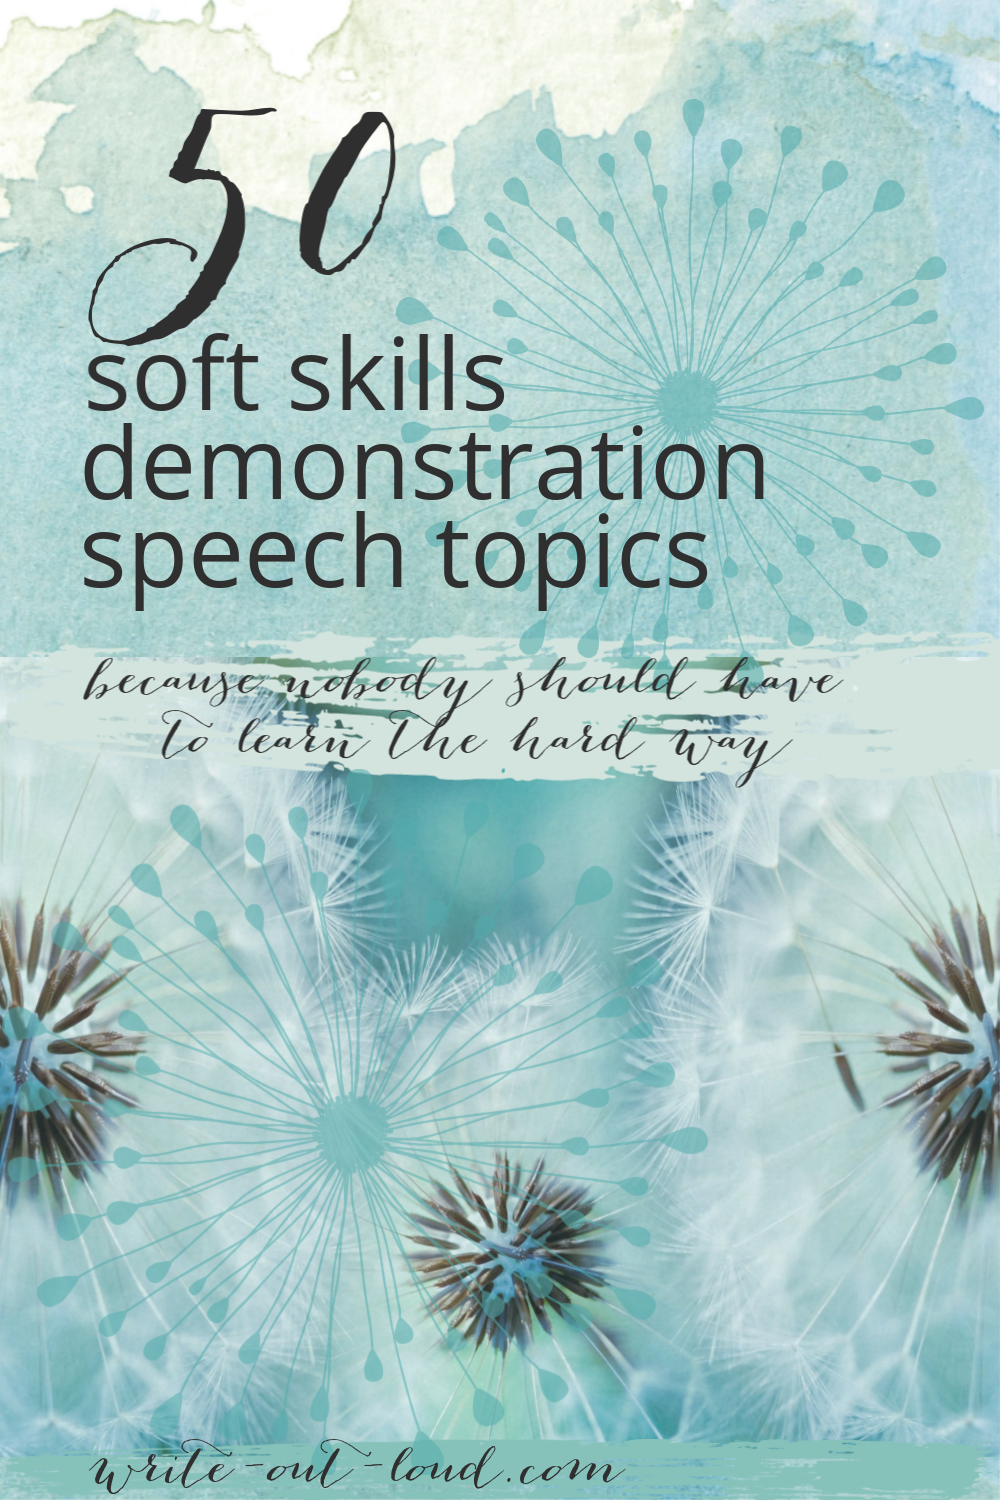 How To Speech Ideas 50 Soft Skill Demonstration Speech Topics Demonstration Speech Speech Topics Public Speaking Activities